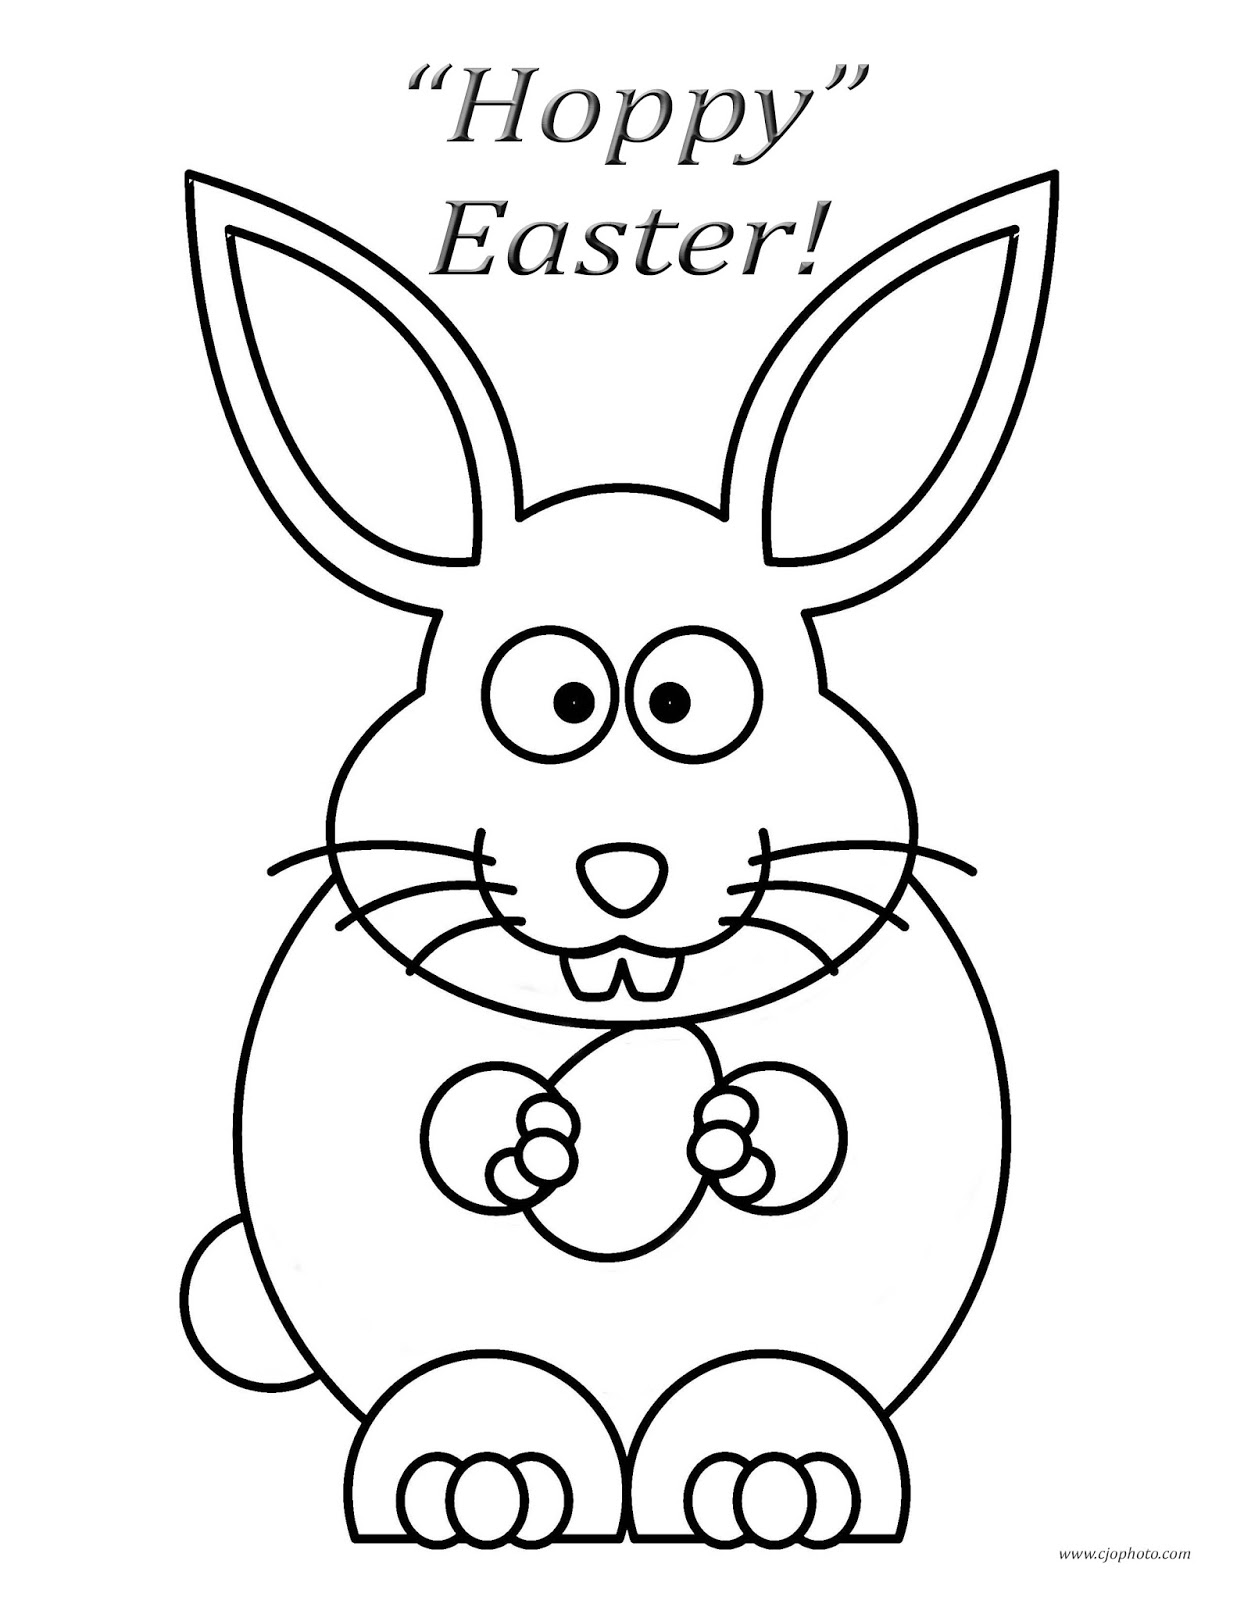 - CJO Photo: Easter Coloring Page: Hoppy Easter Bunny